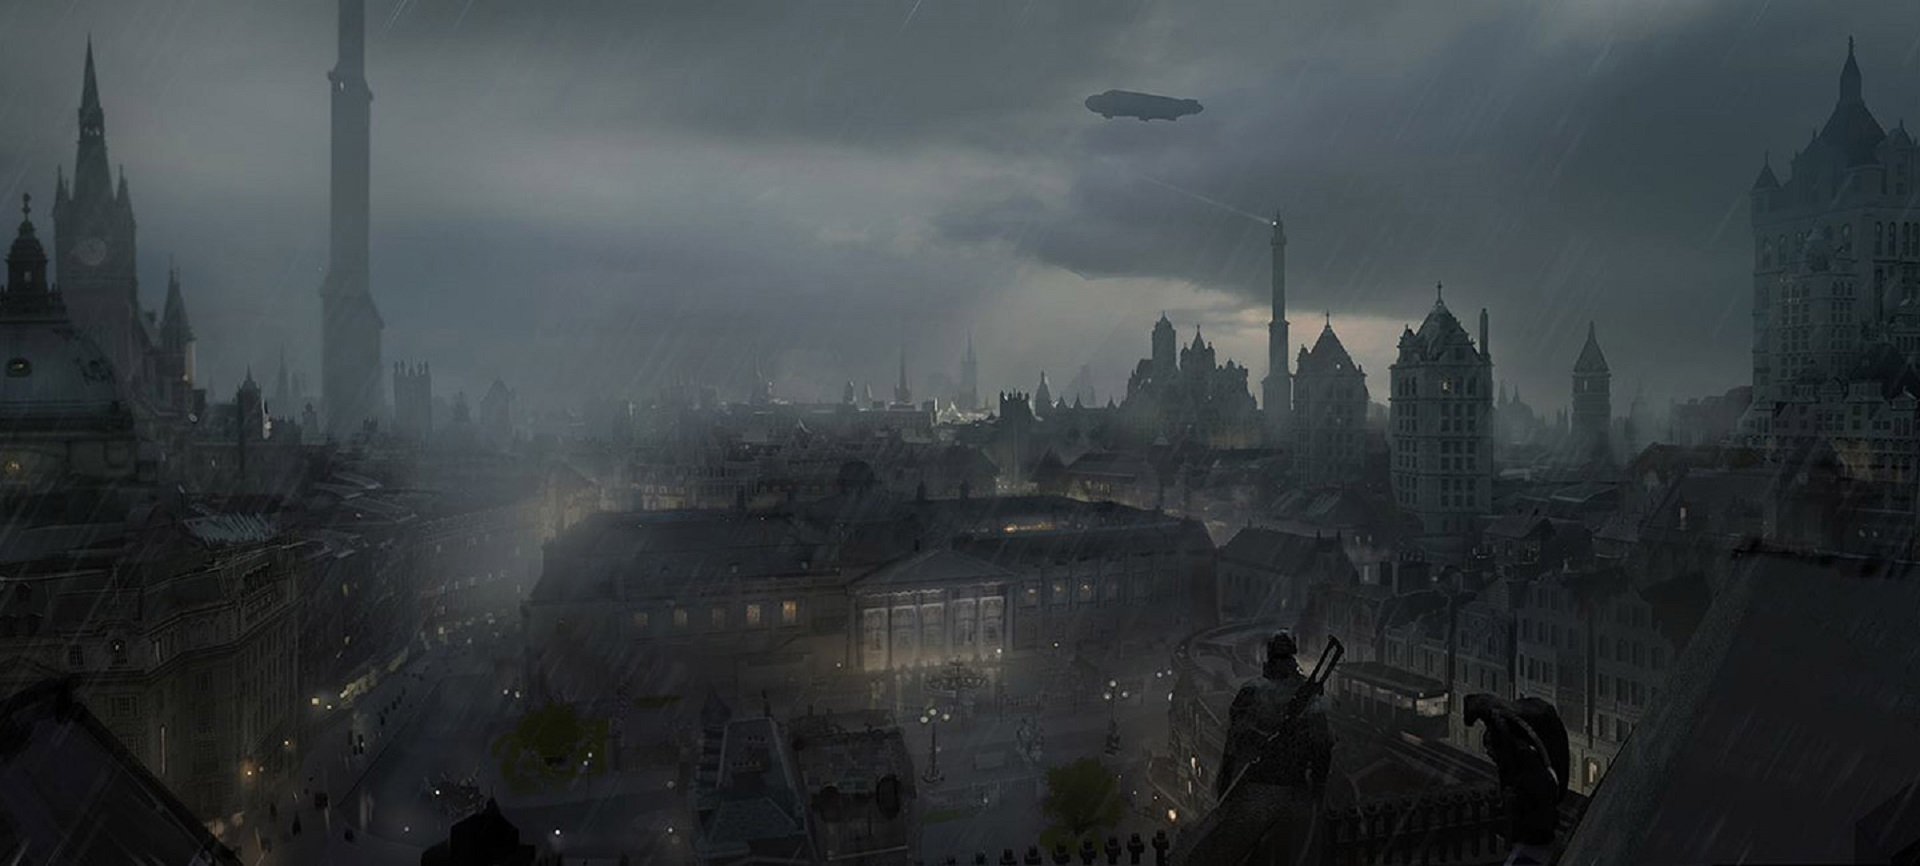 The Order 1886 Wallpaper City of London Rain and Blimps Concept Artwork PS4